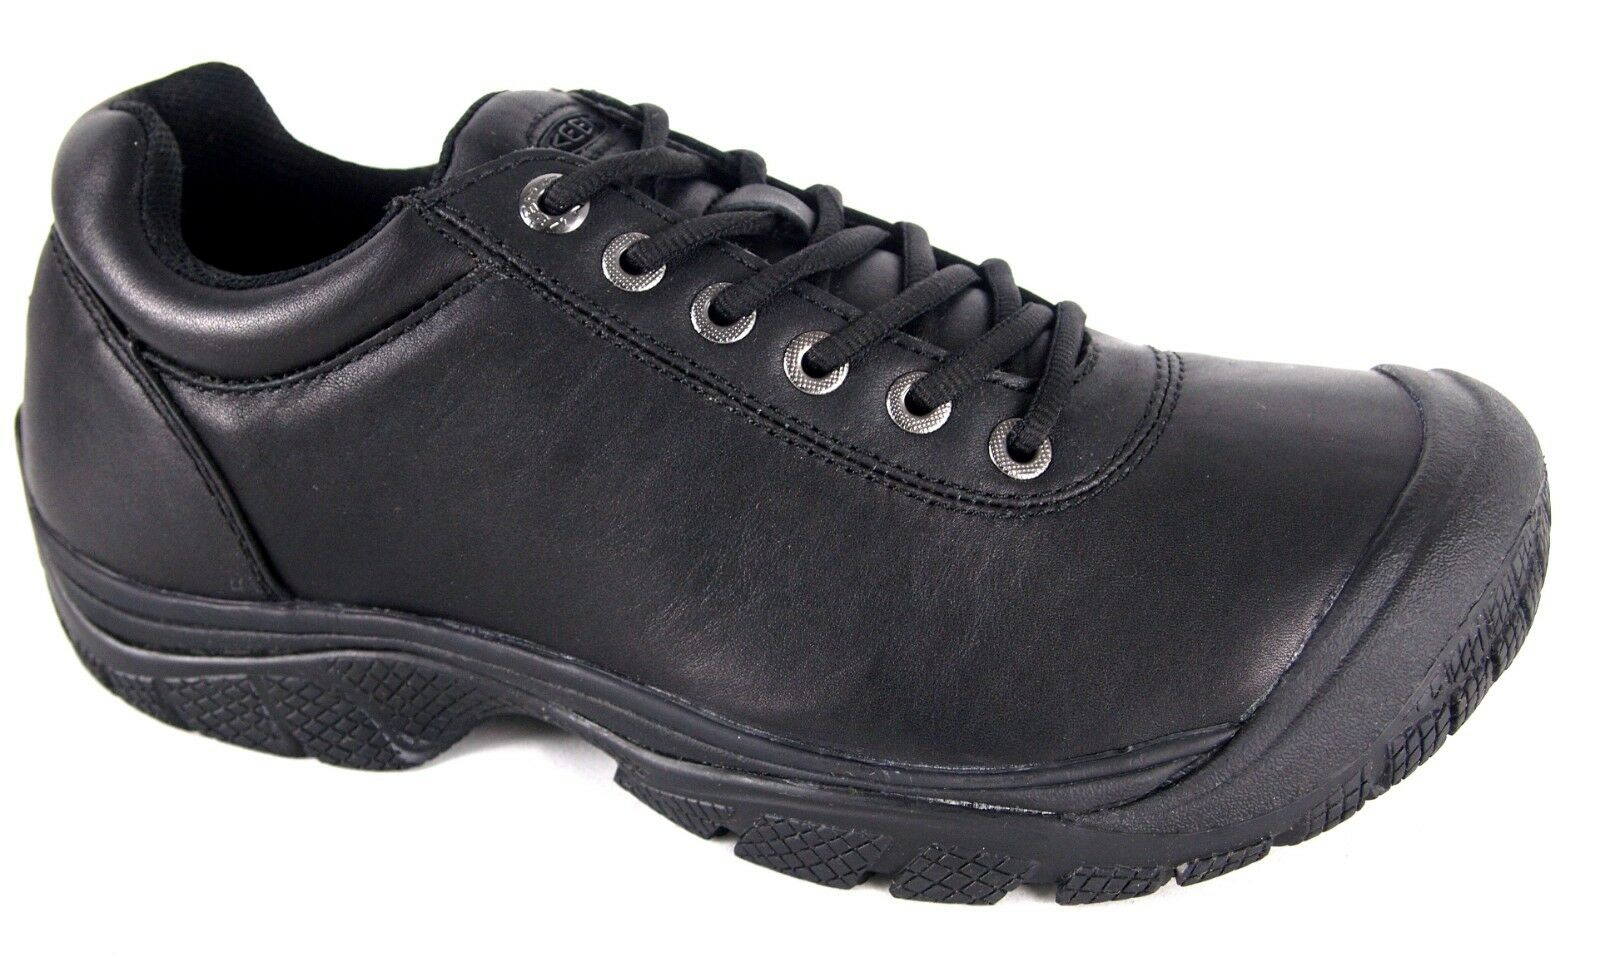 35% OFF-Keen PTC Oxford Casual Comfortable Oil Slip Resistant Work schuhe 1006981